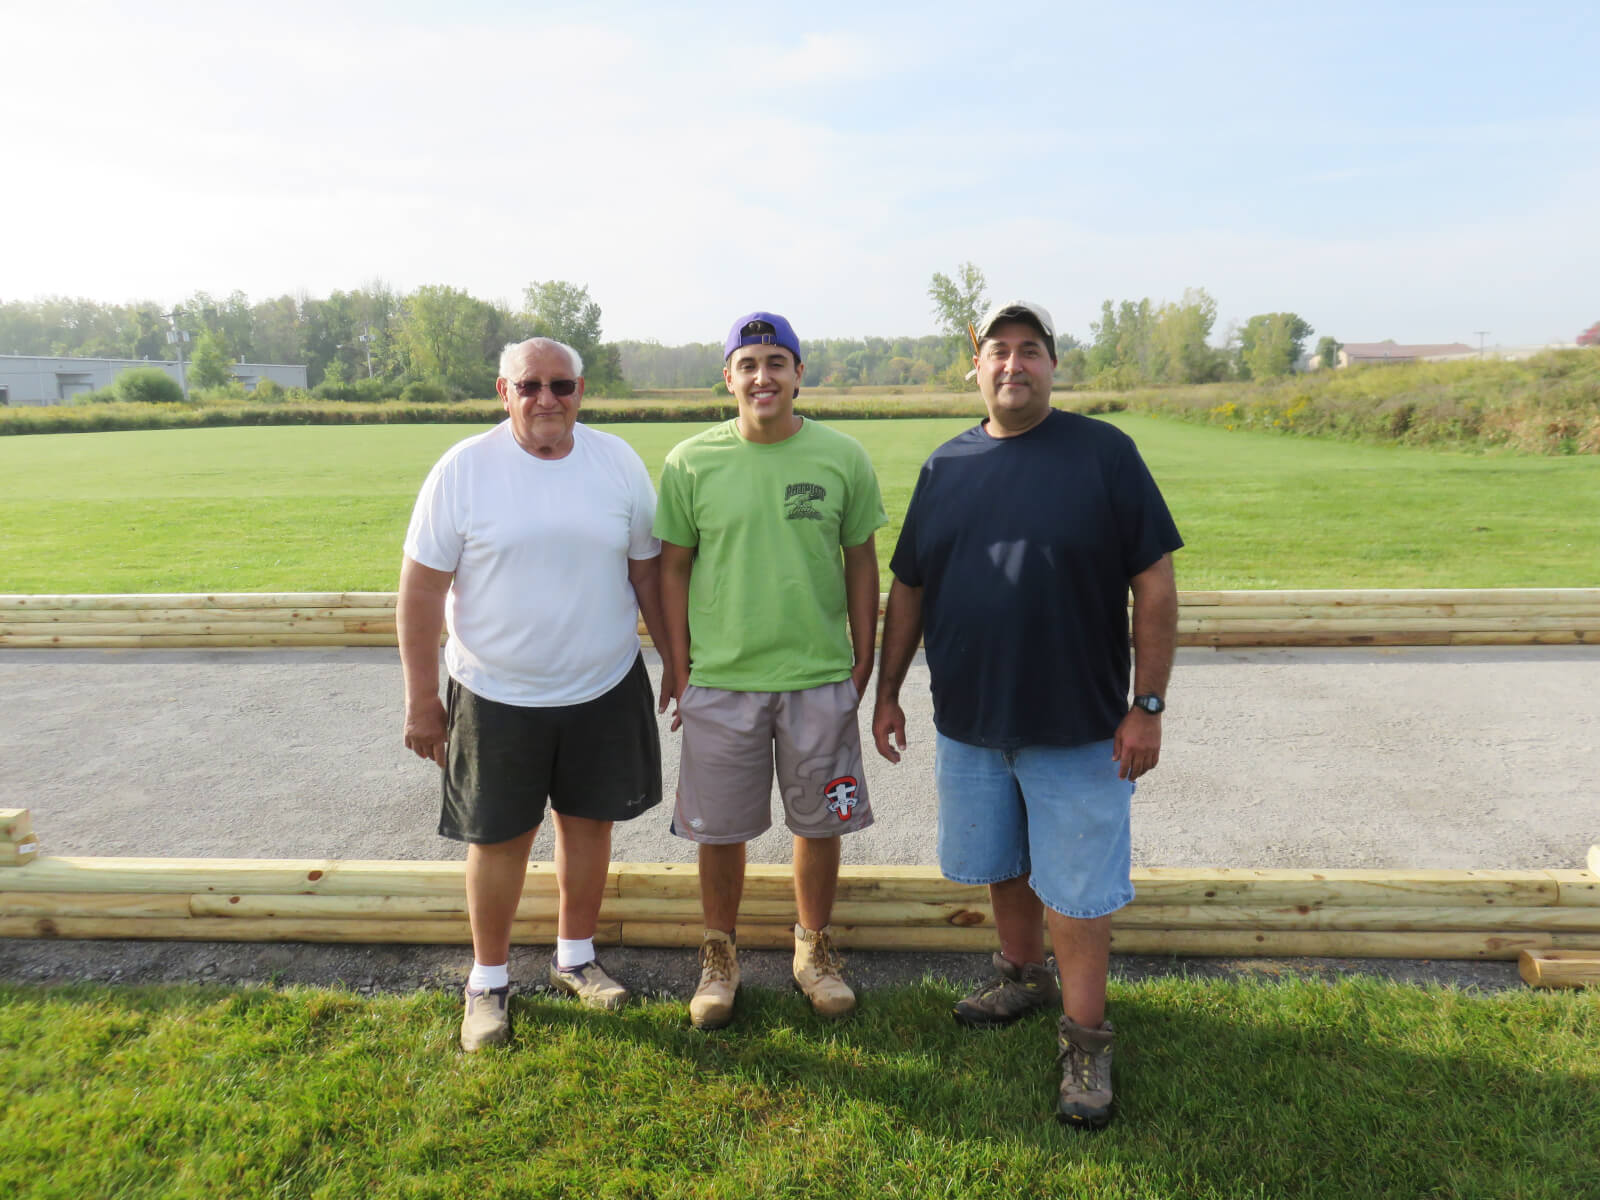 Frankie pictured with his grandfather, Frank Albano, and his father, Matt Tavino